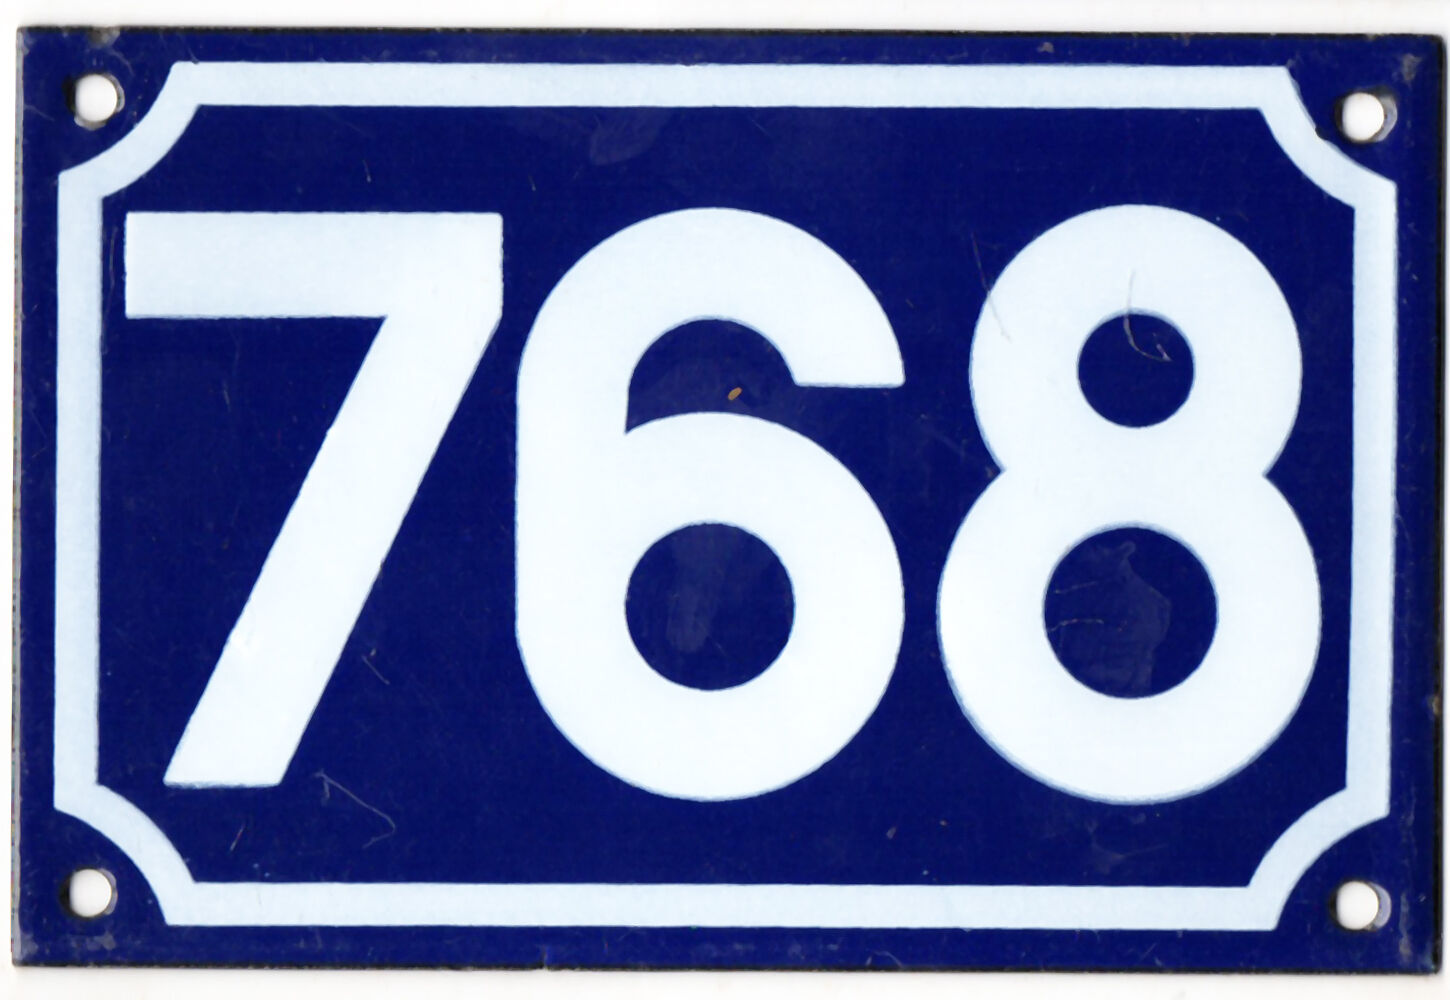 Old blue French house number 768 door gate plate plaque enamel steel metal sign